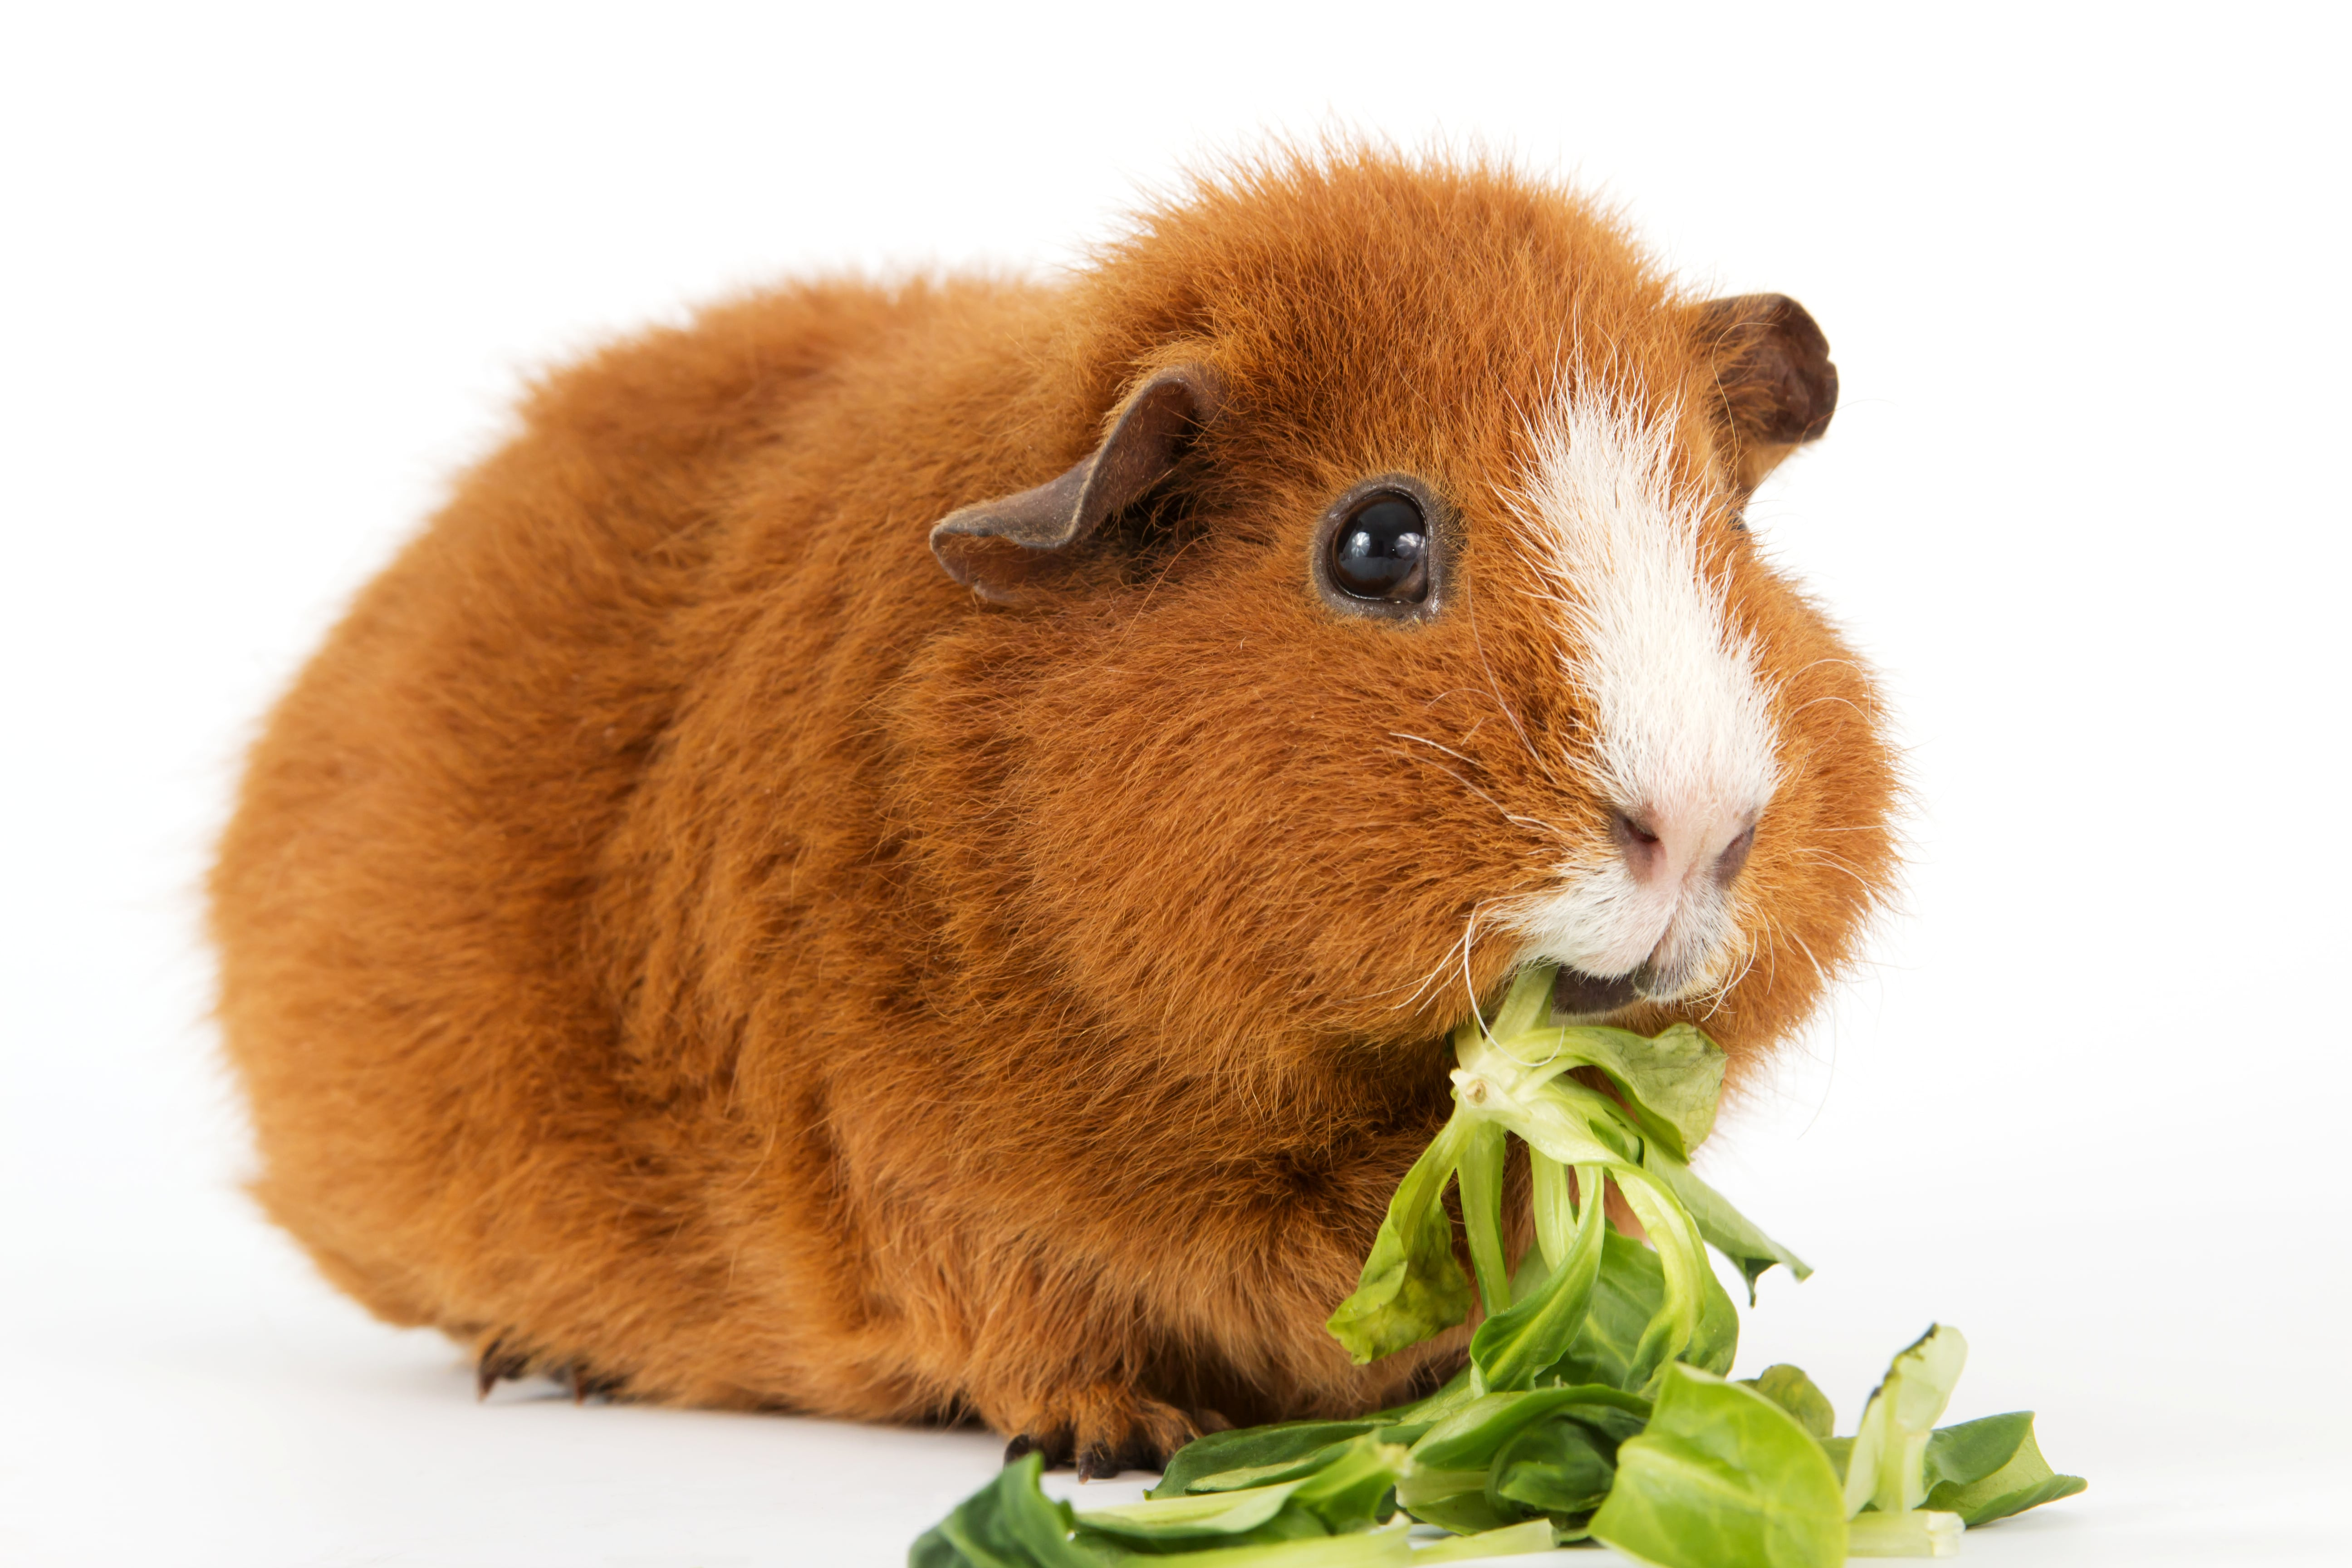 A furry little guinea pig munching some lettuce - just like at our place!